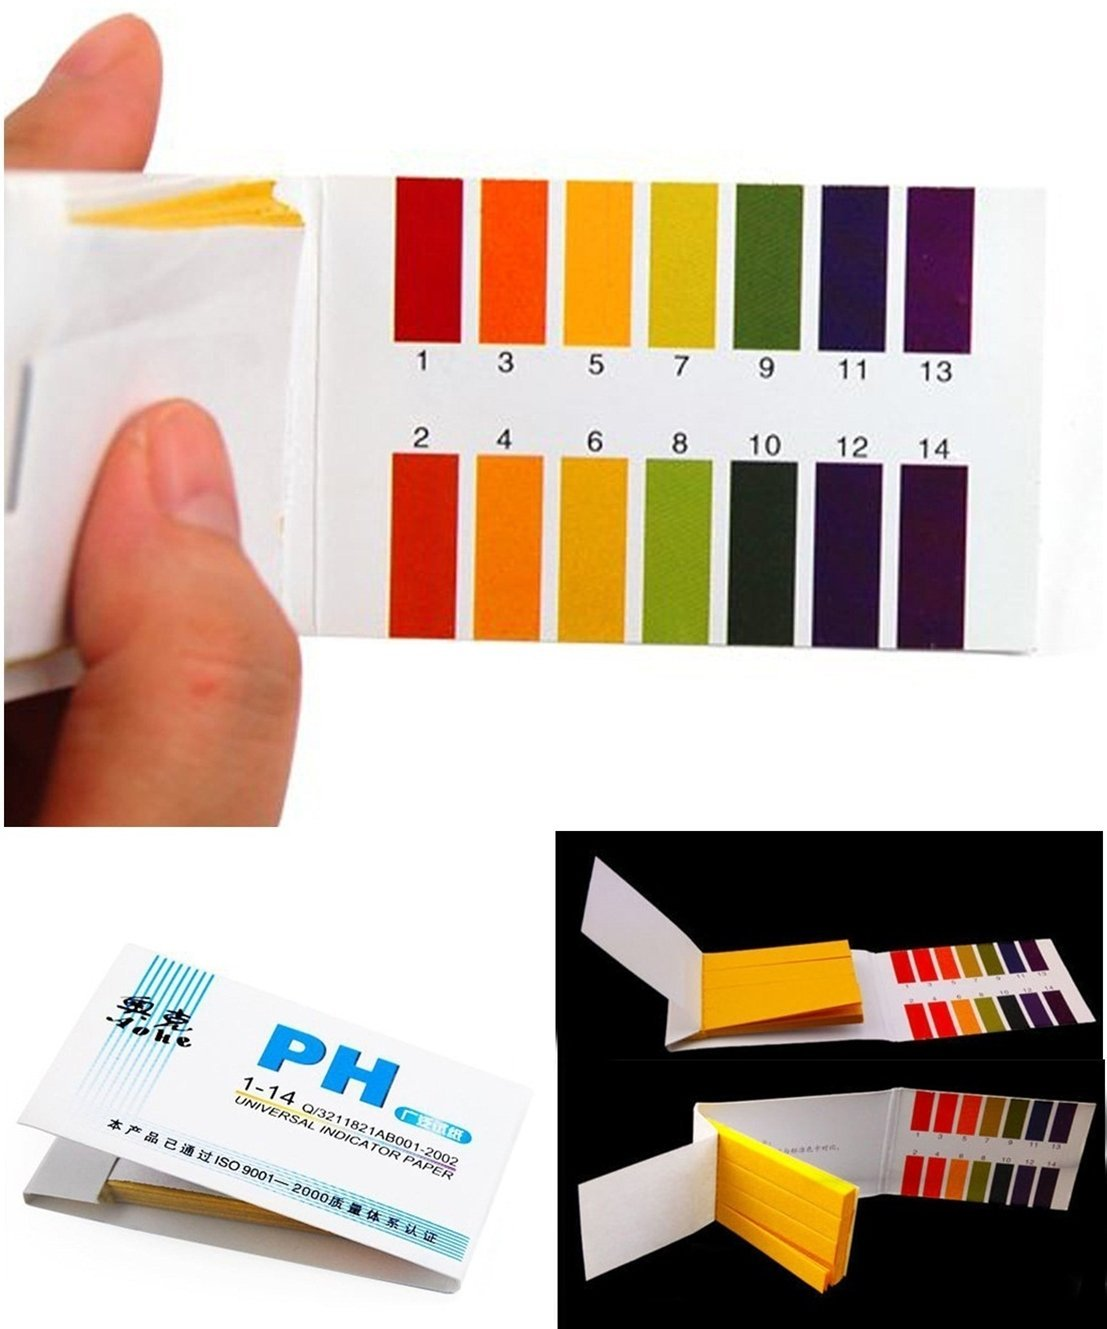 Cheap ph paper color chart find ph paper color chart deals on get quotations 160x test defectless popular ph tester strips urine and saliva 1 14 paper range laboratory nvjuhfo Choice Image